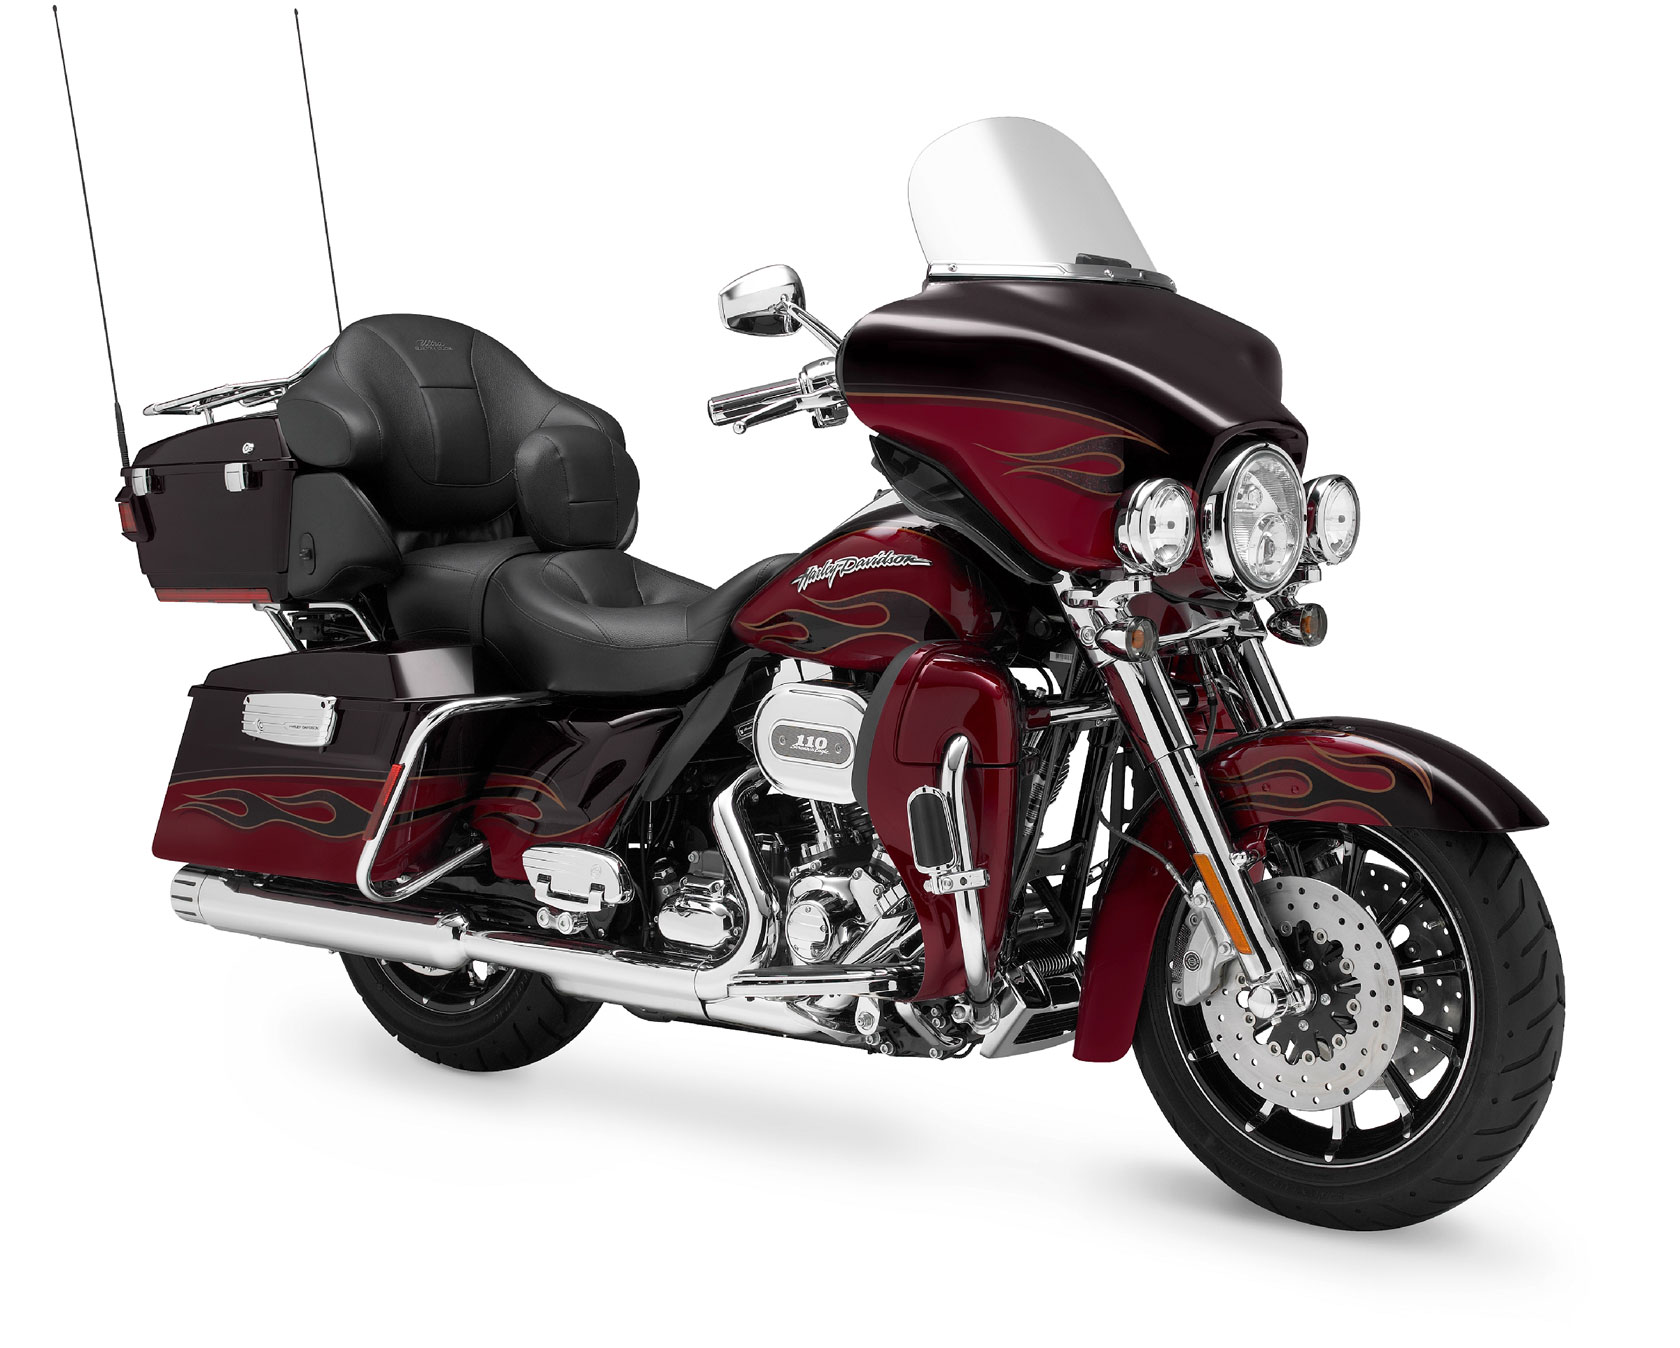 Harley-Davidson FLHTCU Electra Glide Ultra Classic 2010 images #81179